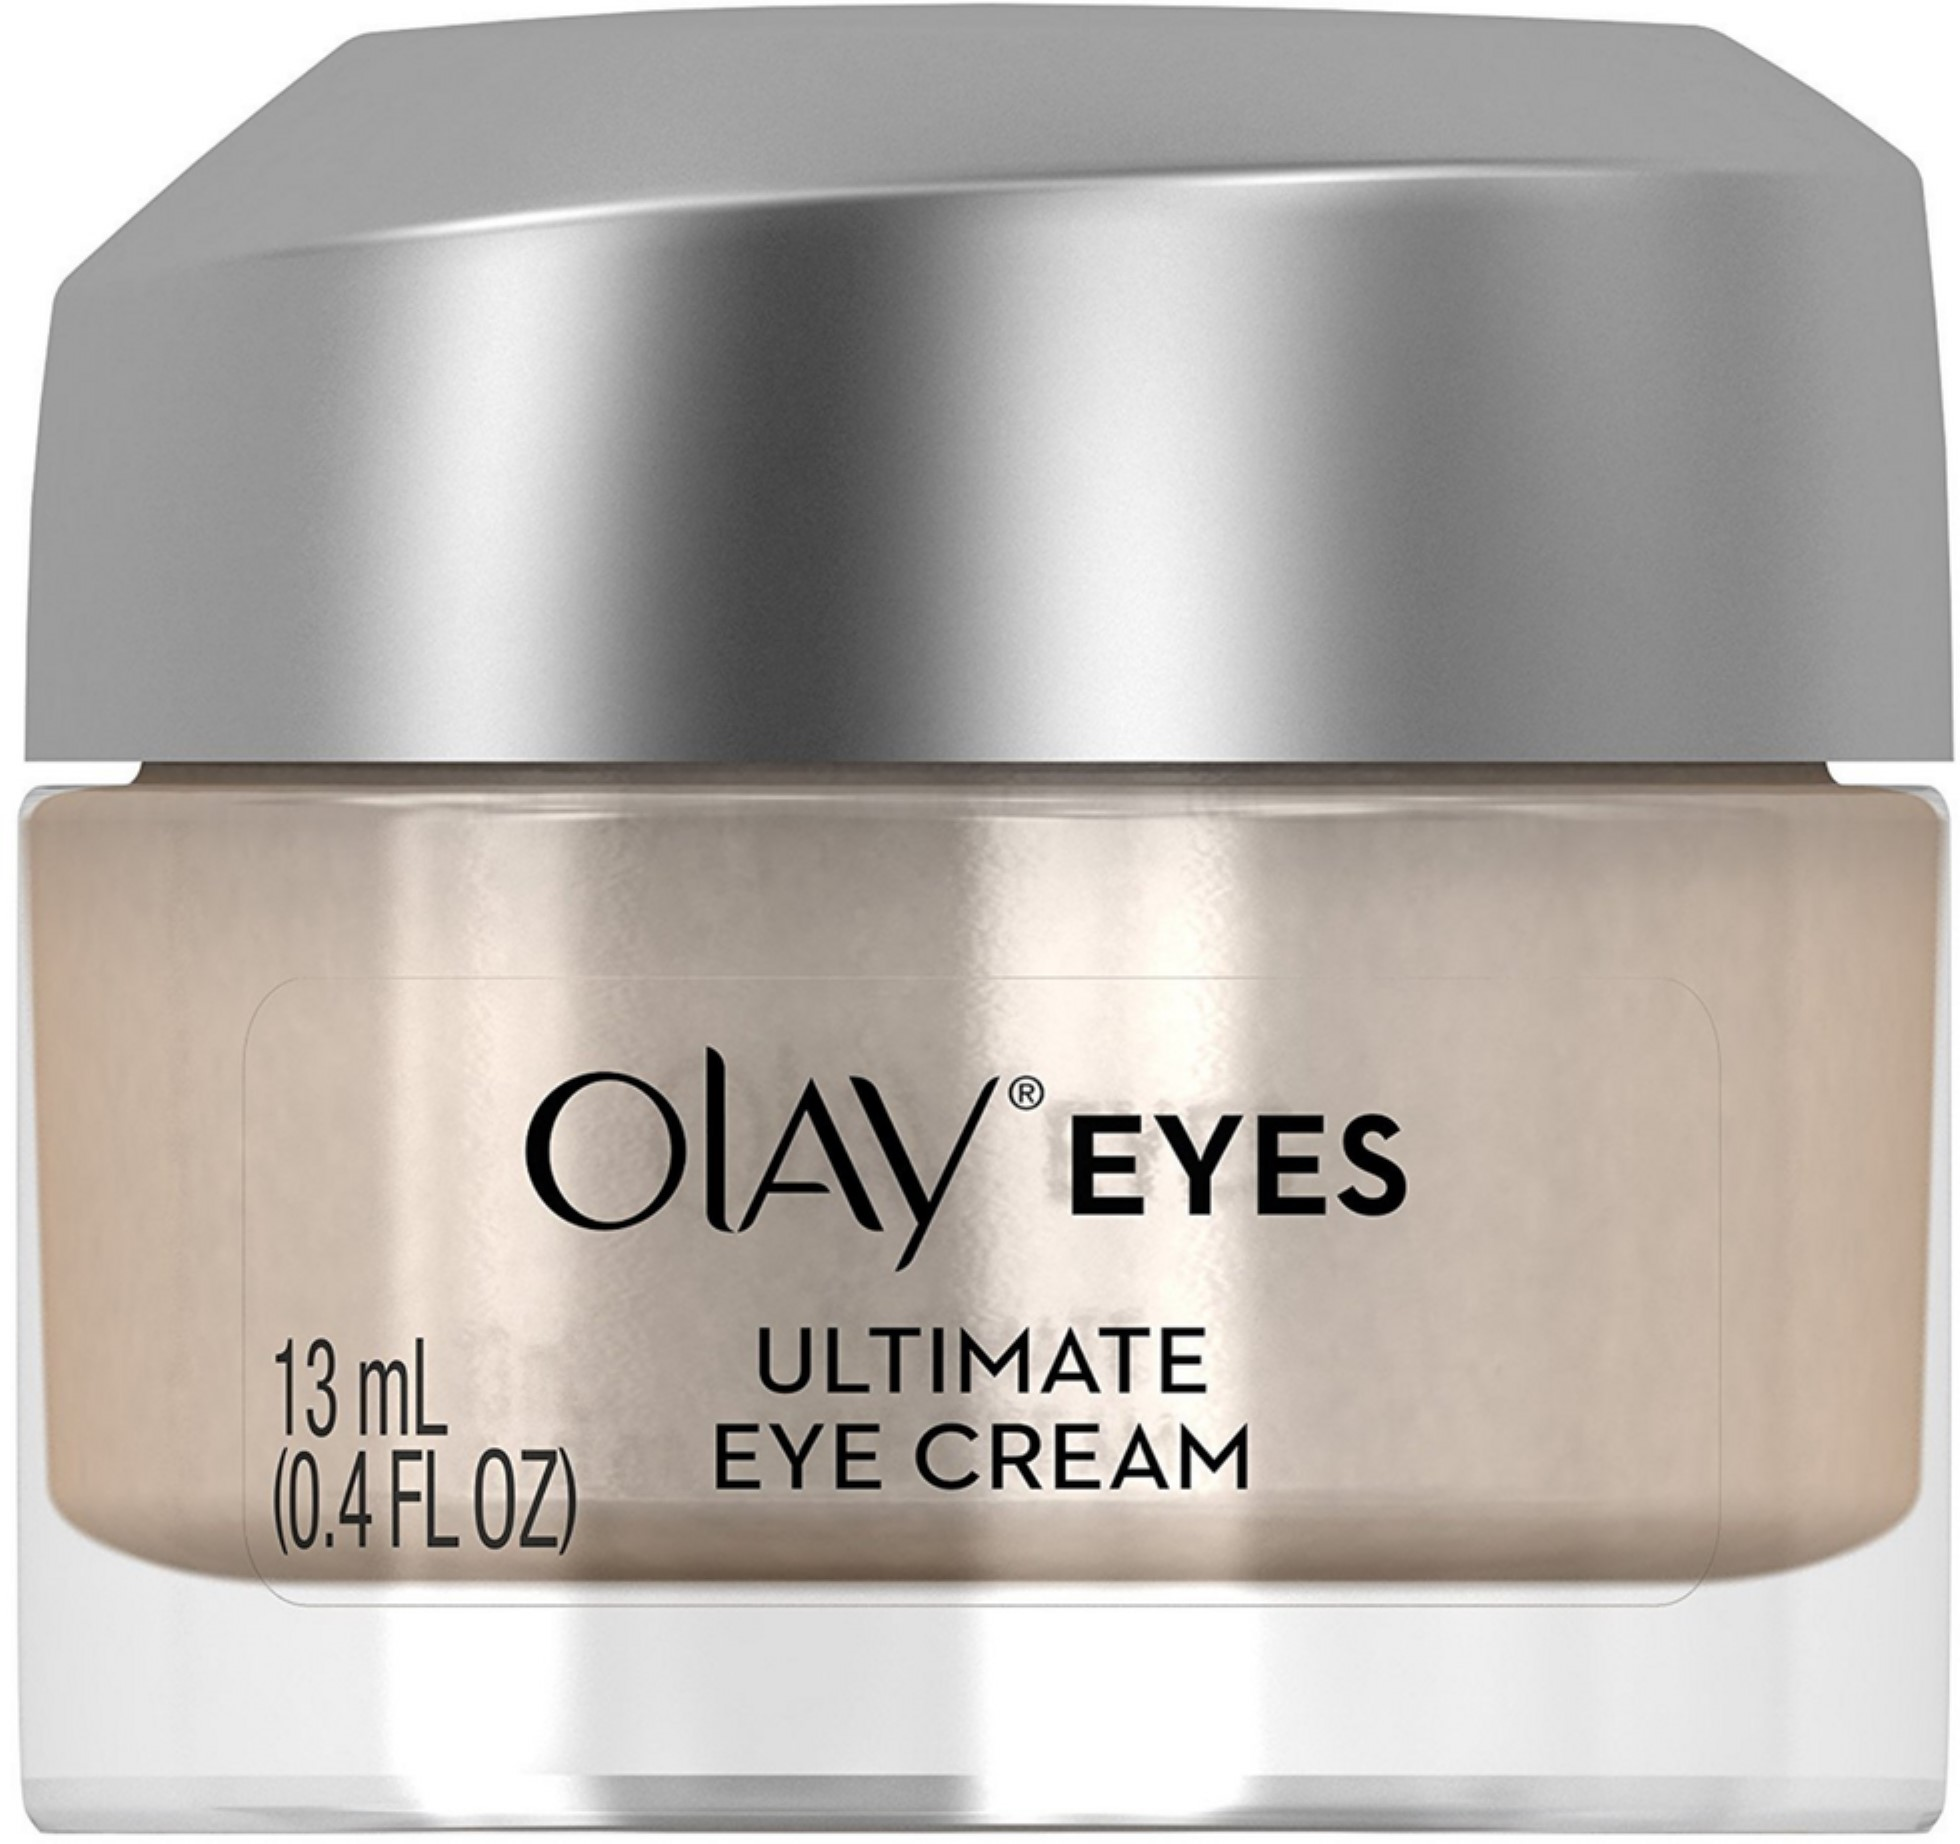 2 Pack - OLAY Ultimate Eye Cream for Dark Circles, Wrinkles And Puffiness 0.4 oz